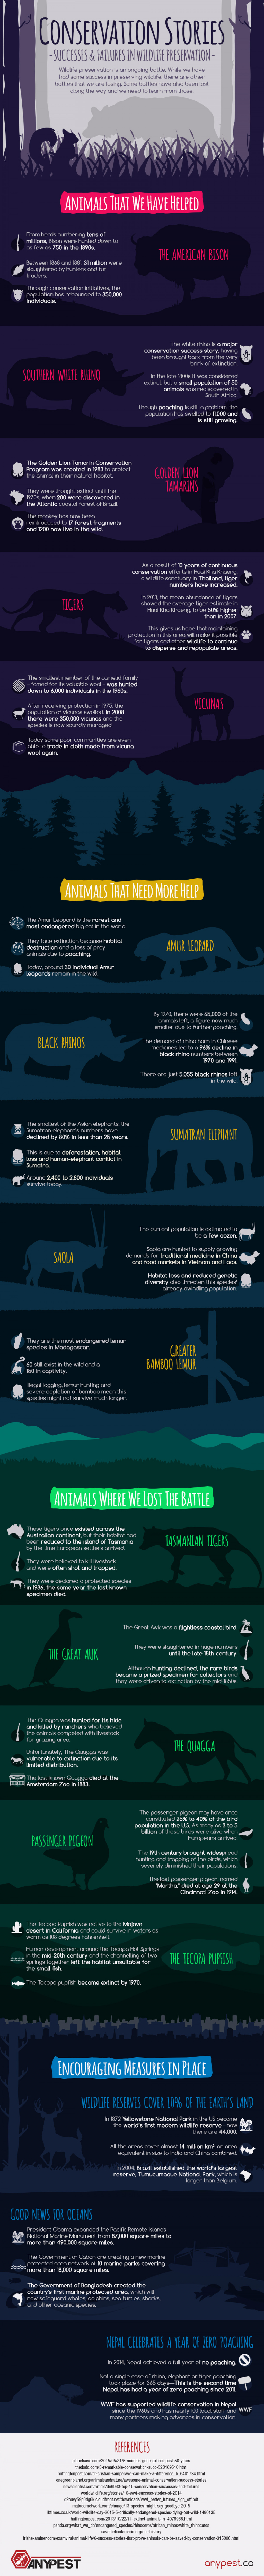 Conservation Stories: Successes & Failures in Wildlife Preservation Infographic